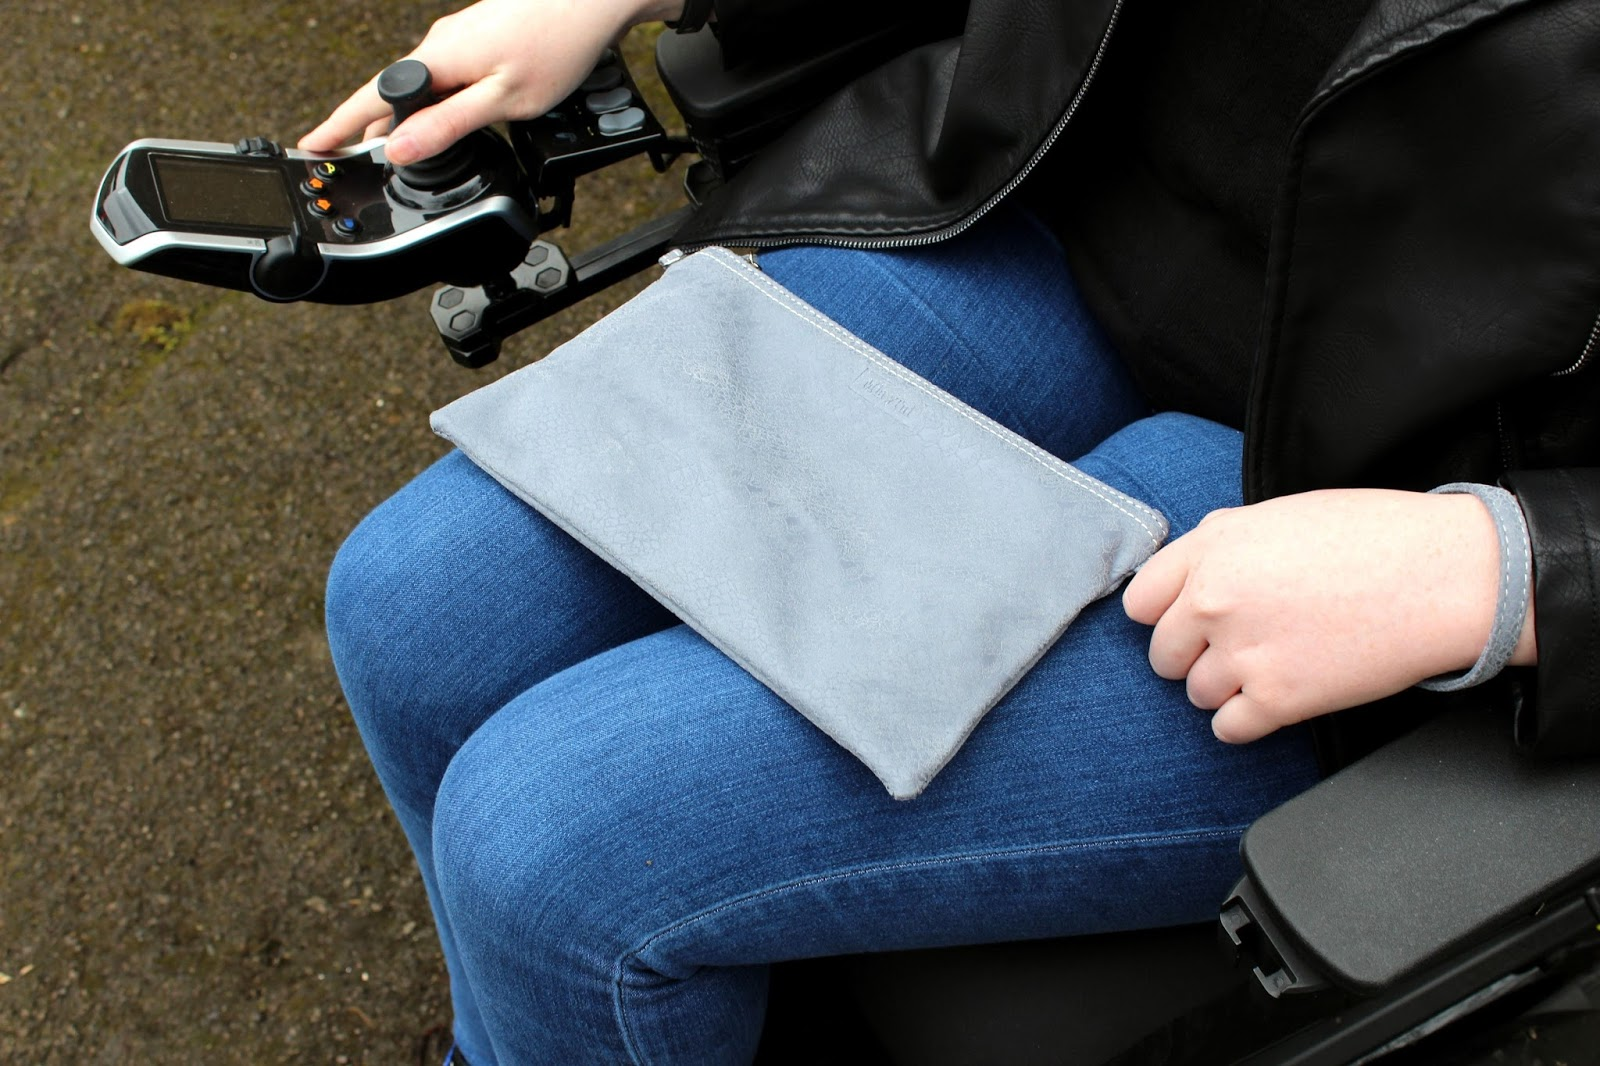 Shona is sitting in her powerchair, her lap is visible, she is holding a small grey clutch bag. Her powerchair controller and both hands are visible, one on the controller and the other holding the bag.